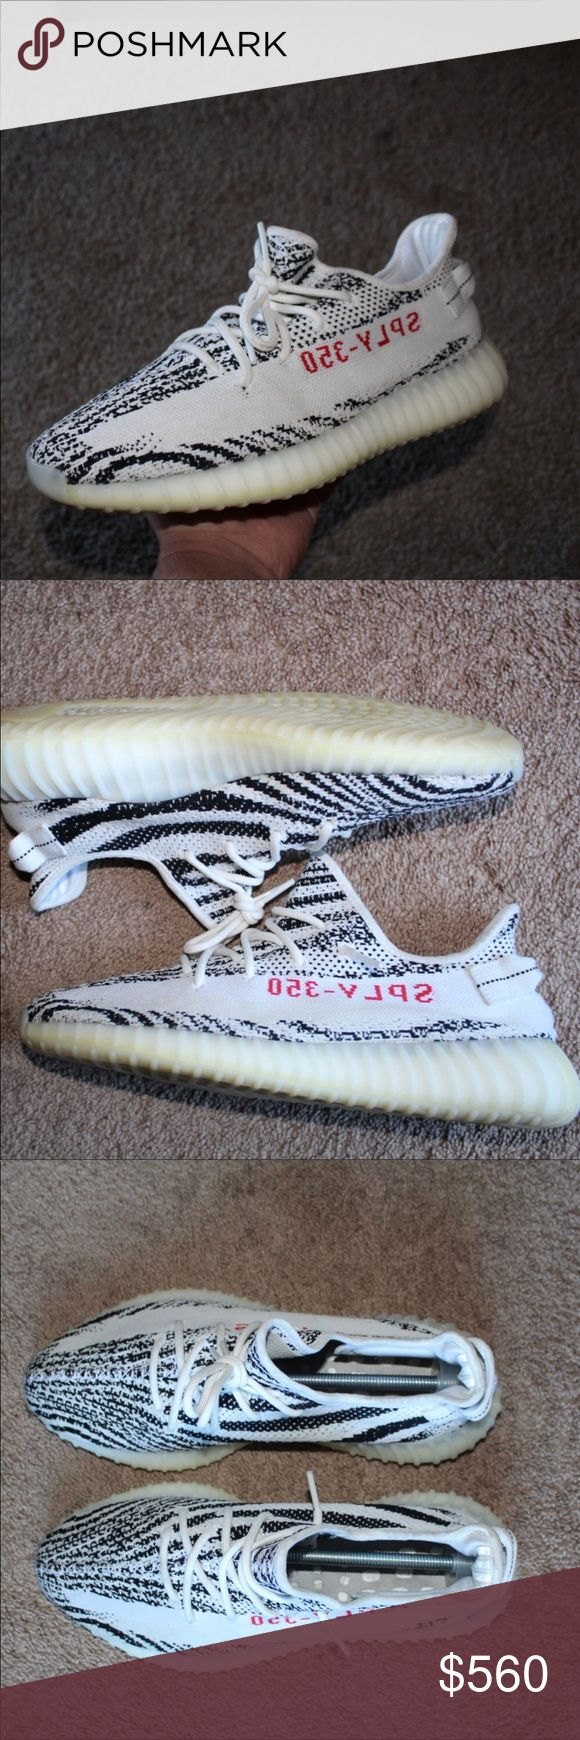 Yeezy Zebra V2 Authentic, size 11.5, worn, pass the UV light check, bought them off of goat new, worn some times but not a lot. Decent 8.8/10. Only flaws are dirty insoles that have feet markings but I tried getting most of it off. Come with a good price. Hate and low balls bet the B A N H A M M E R. I can go cheaper off of here, other than that this is where the price will be around since posh has hella fees. Yeezy Shoes Sneakers